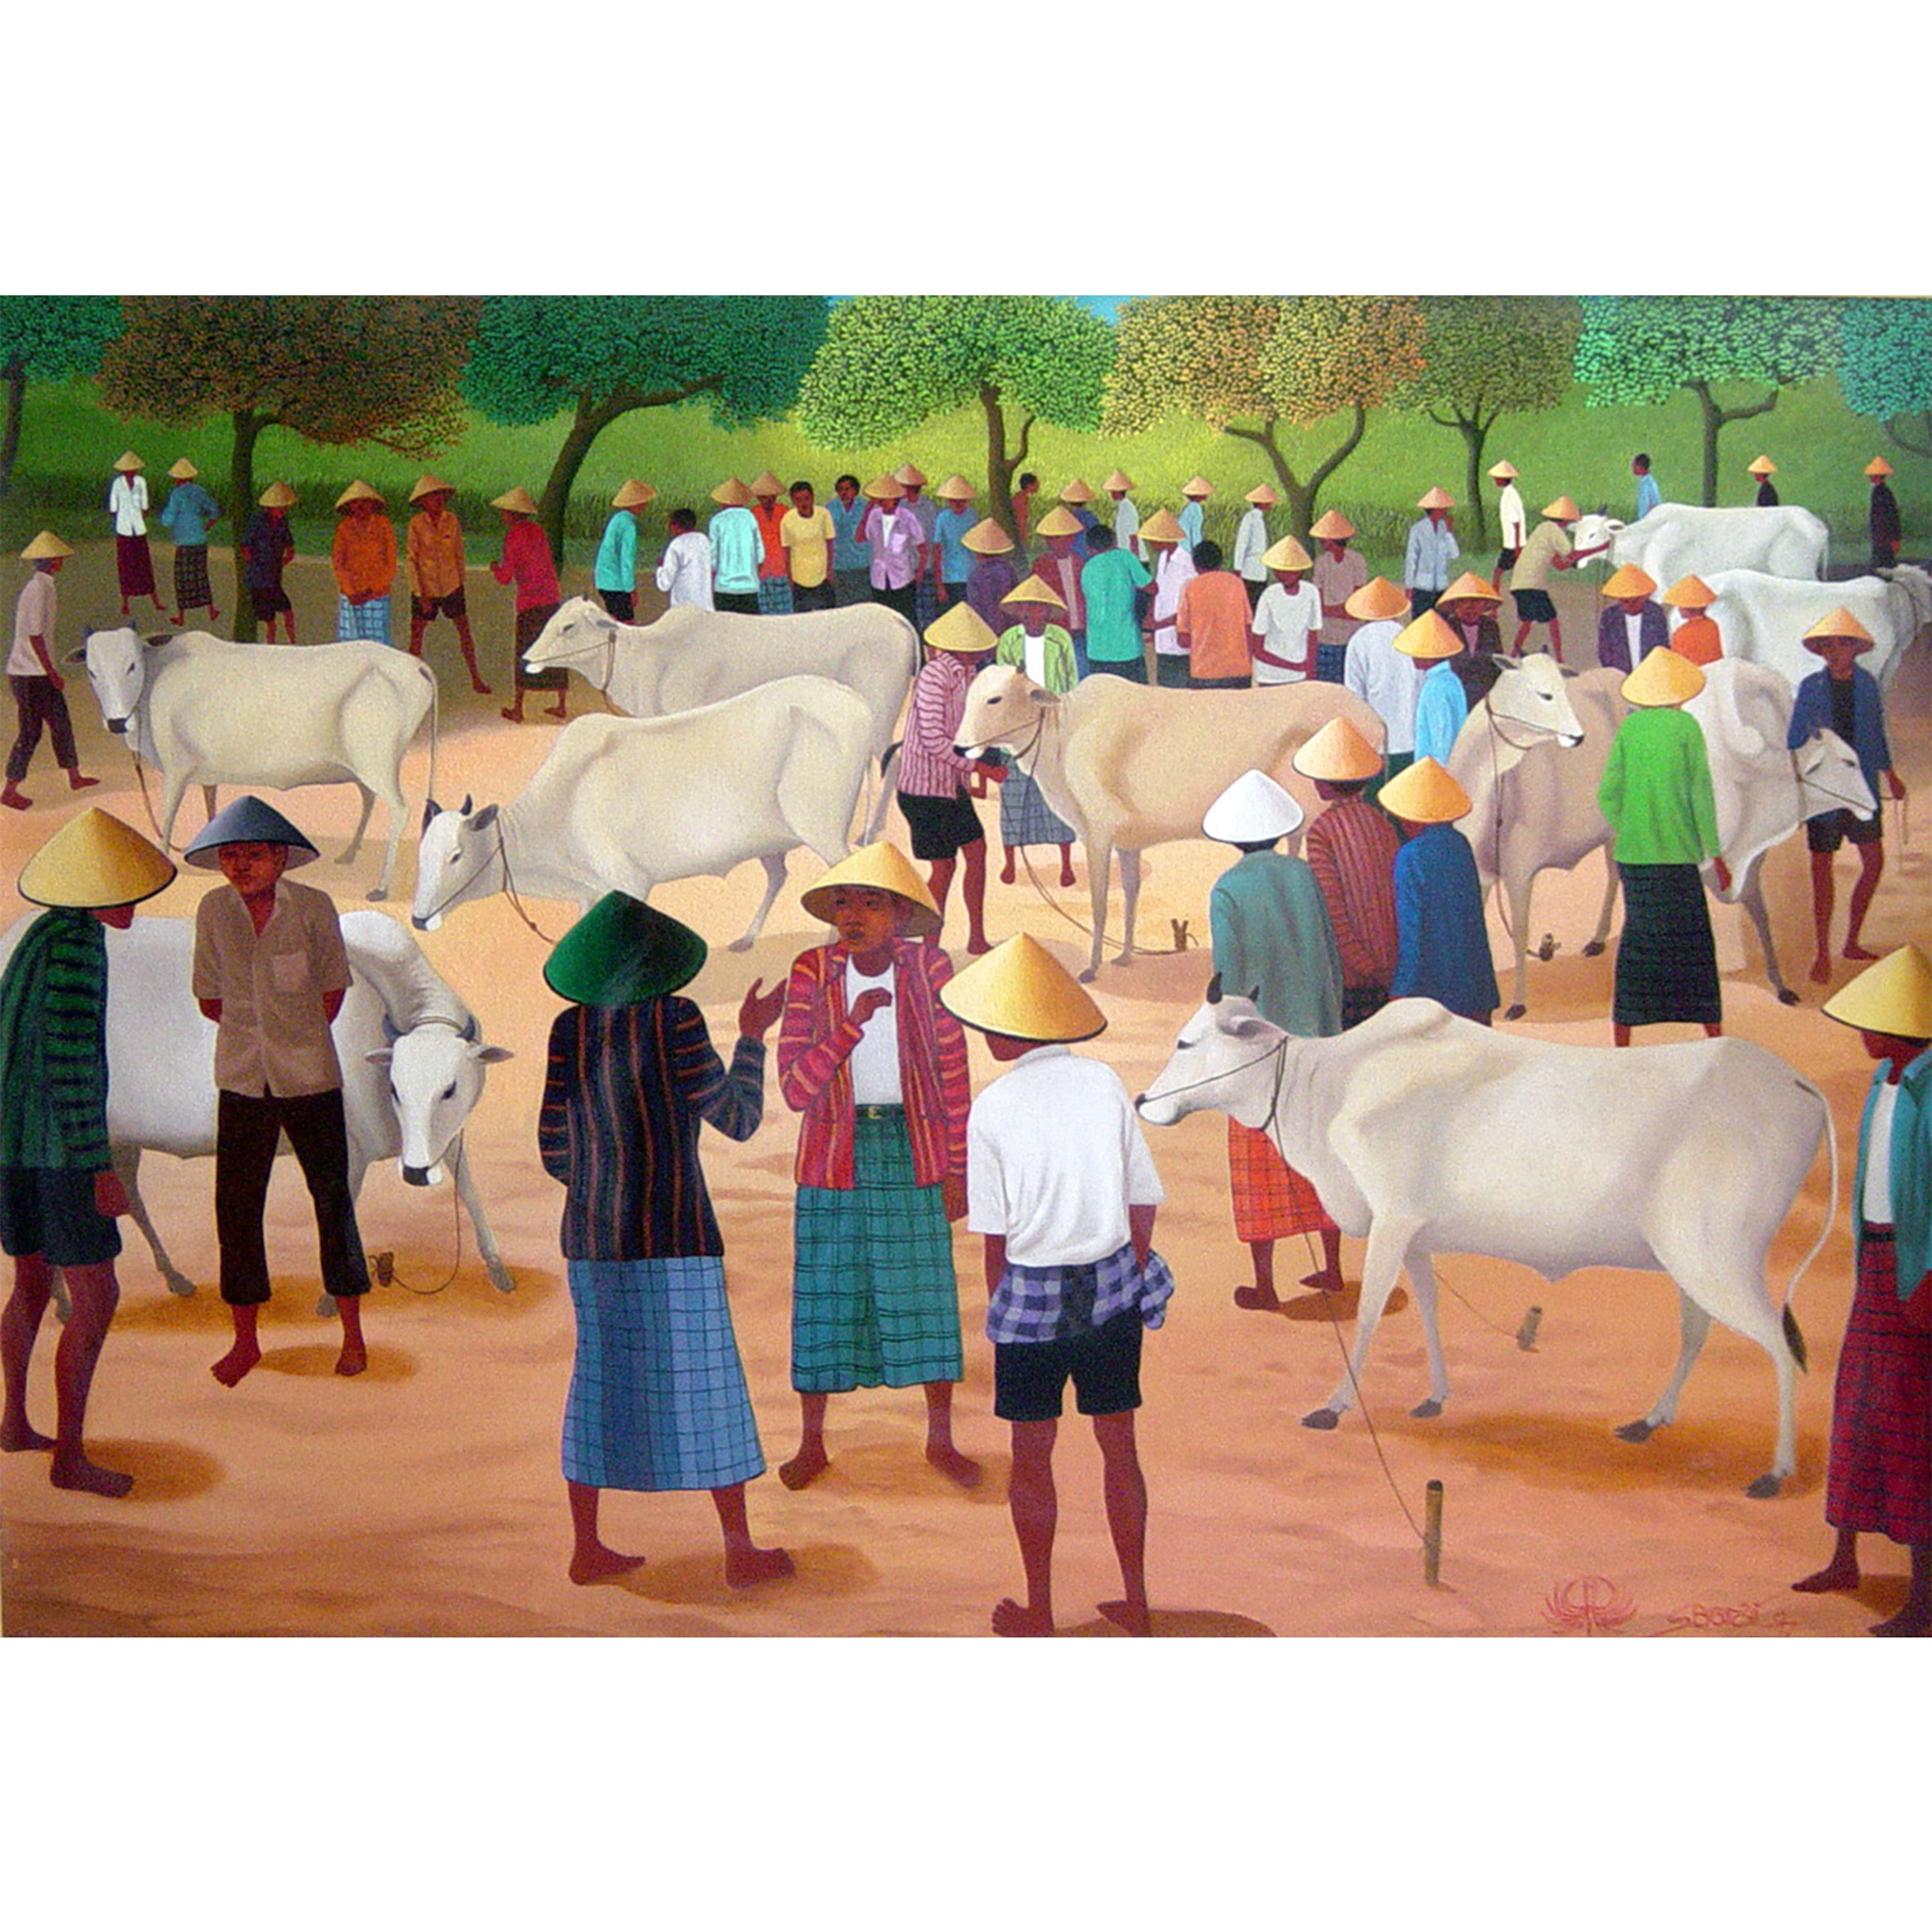 Cow Market, 1997, Oil on Canvas, 90x130cm.jpg